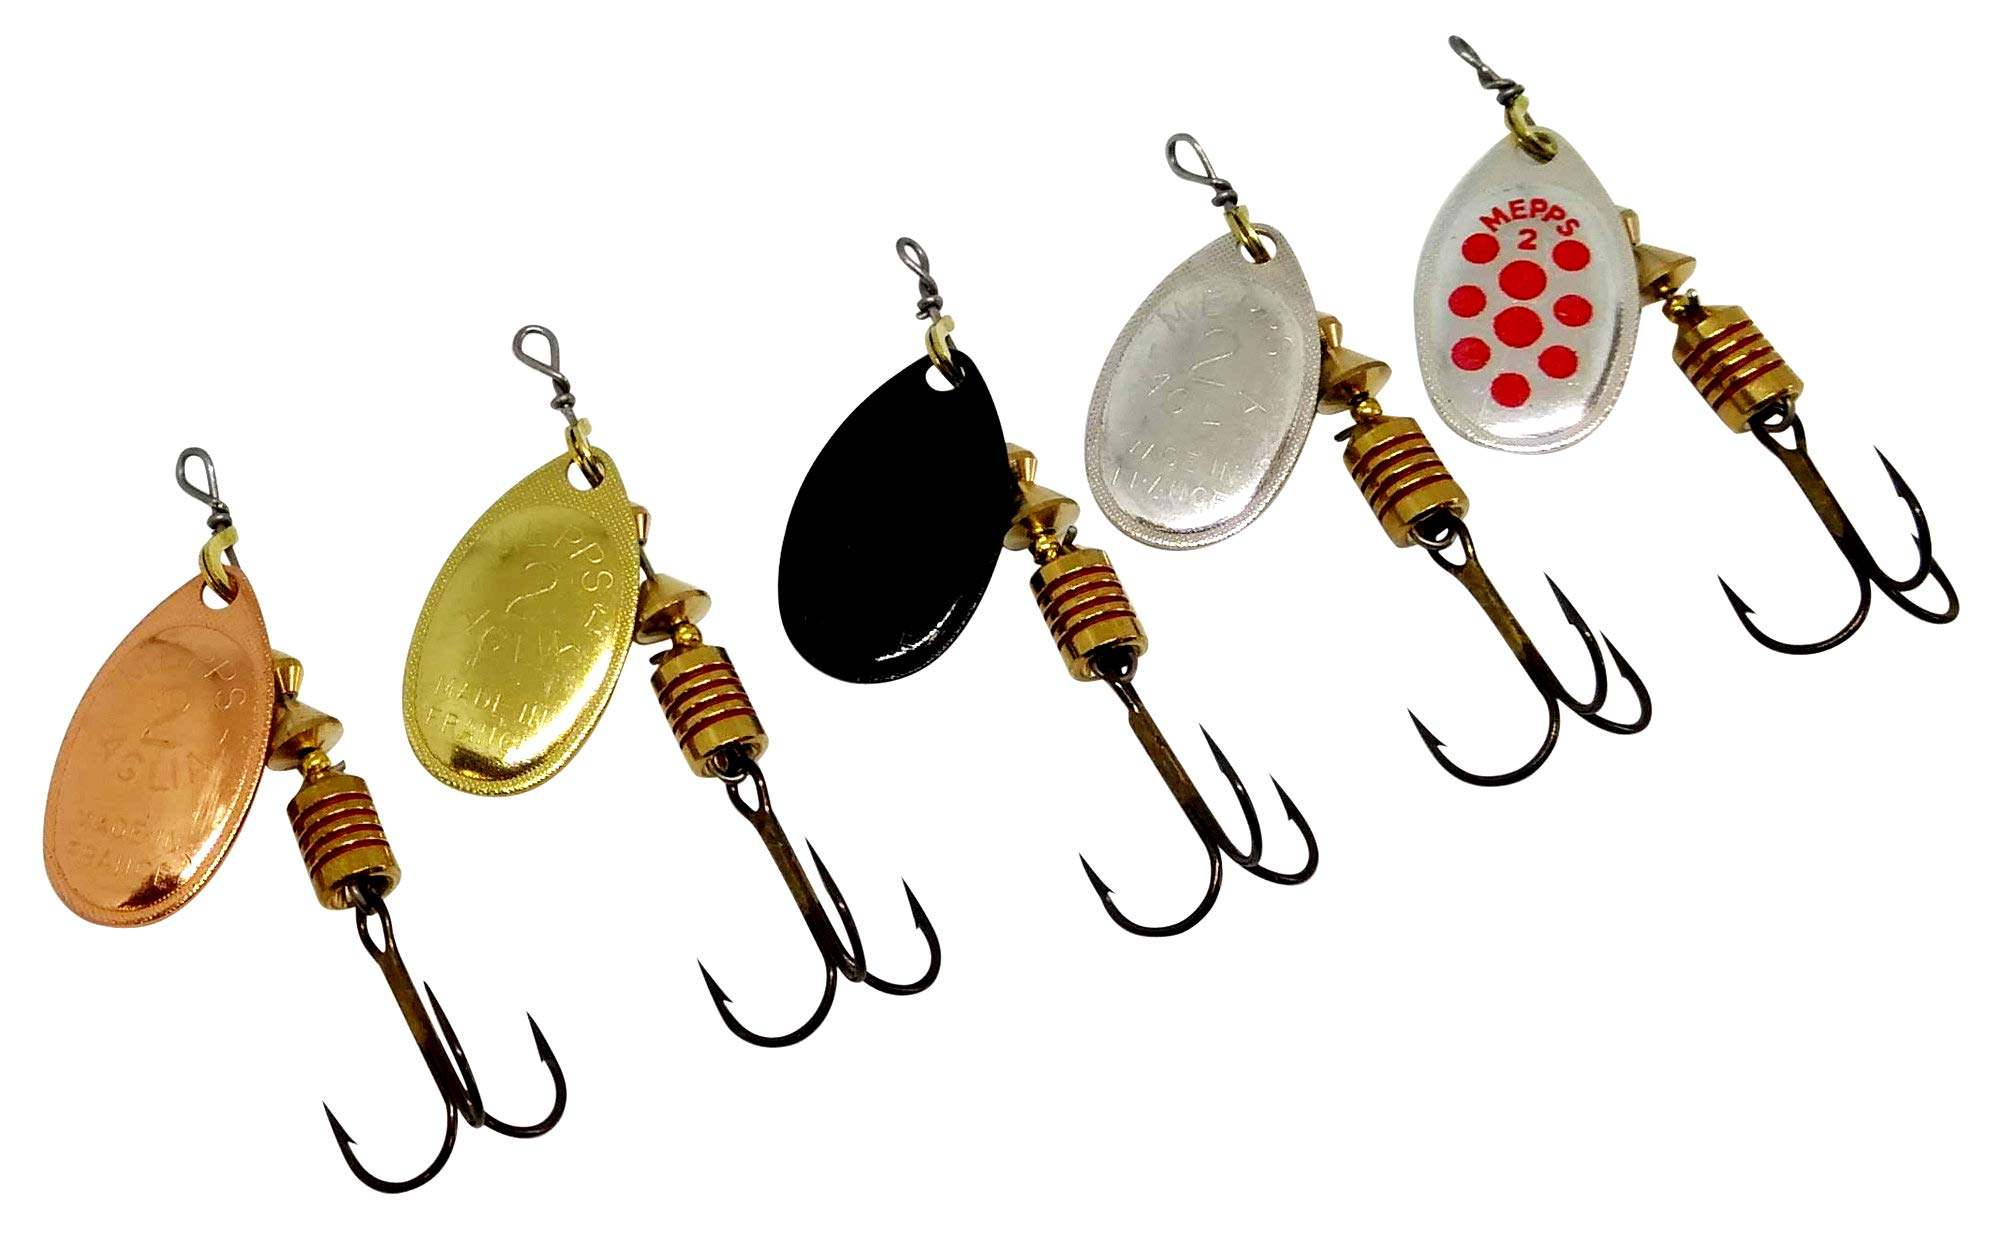 Fishing Spinners Set of 5, Best selections from Mepps, Savage Gear, Blue Fox - Best Lures for Bass, Trout, Salmon, Crappie and Musky Fishing (#2, S/G/C/BL/SRD) by Lureshop eu